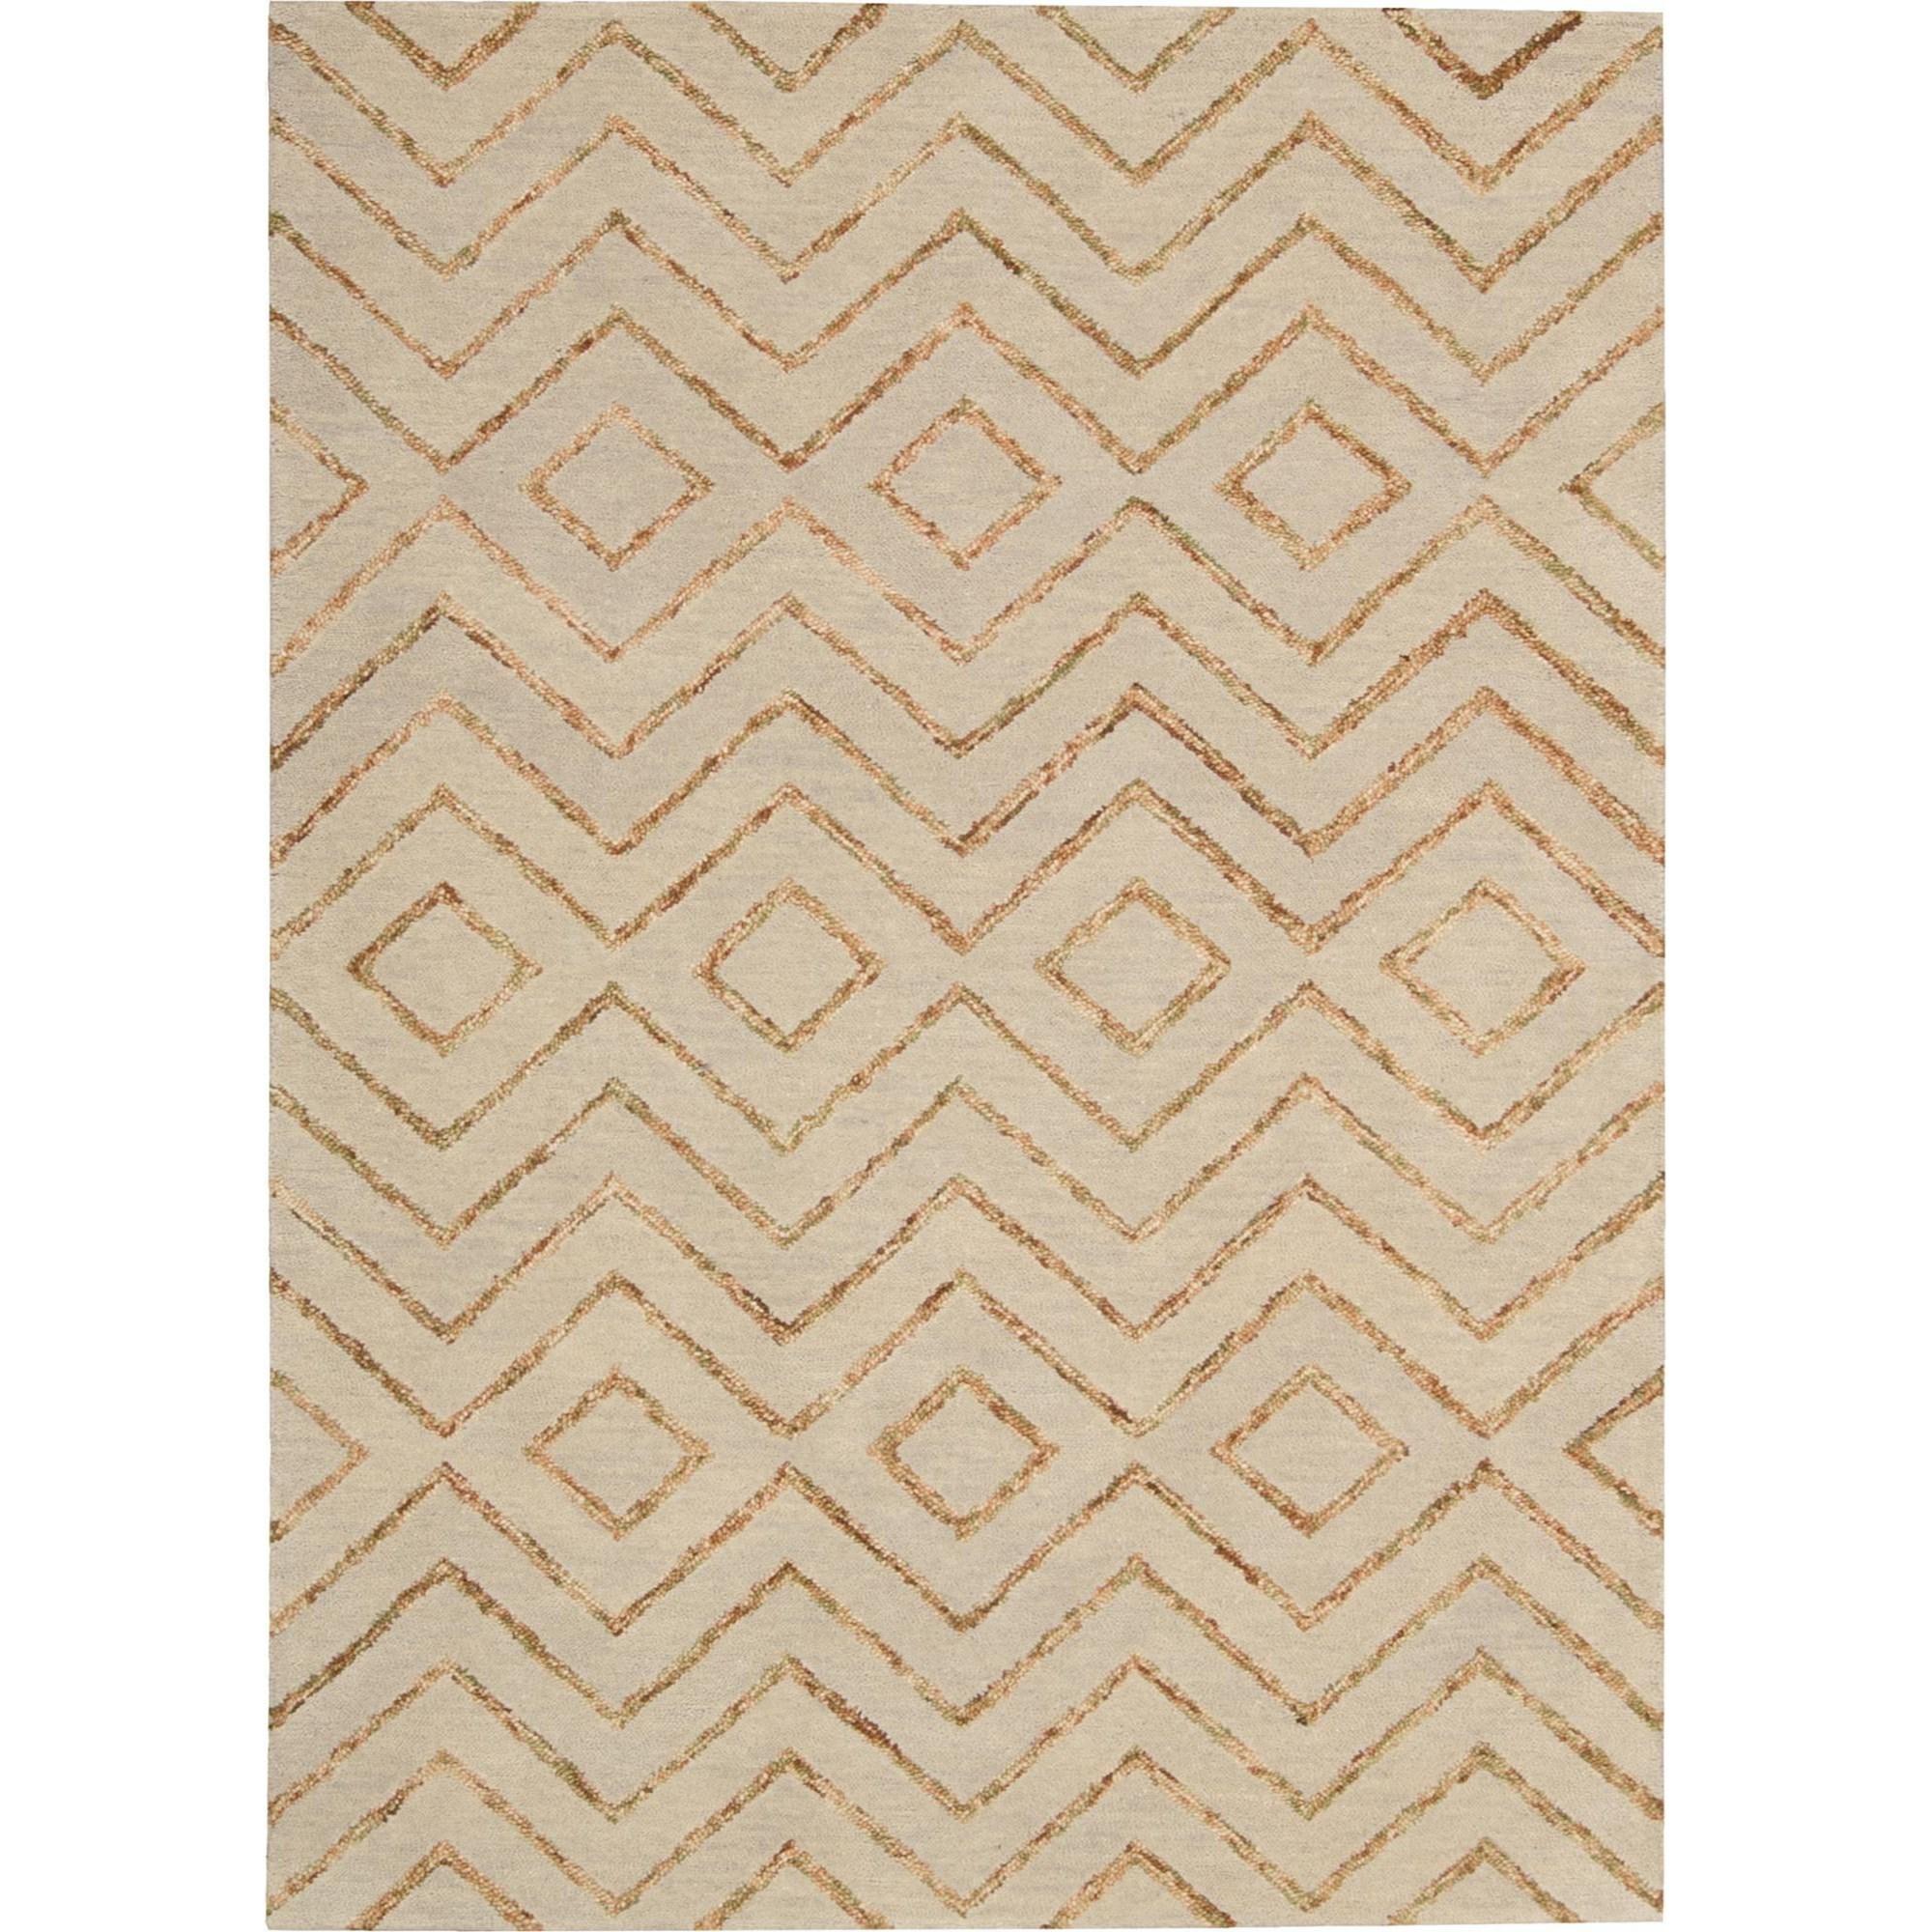 "Nourison Barclay Butera Lyfestyle - Intermix 3'6"" x 5'6"" Sand Area Rug - Item Number: 29070"